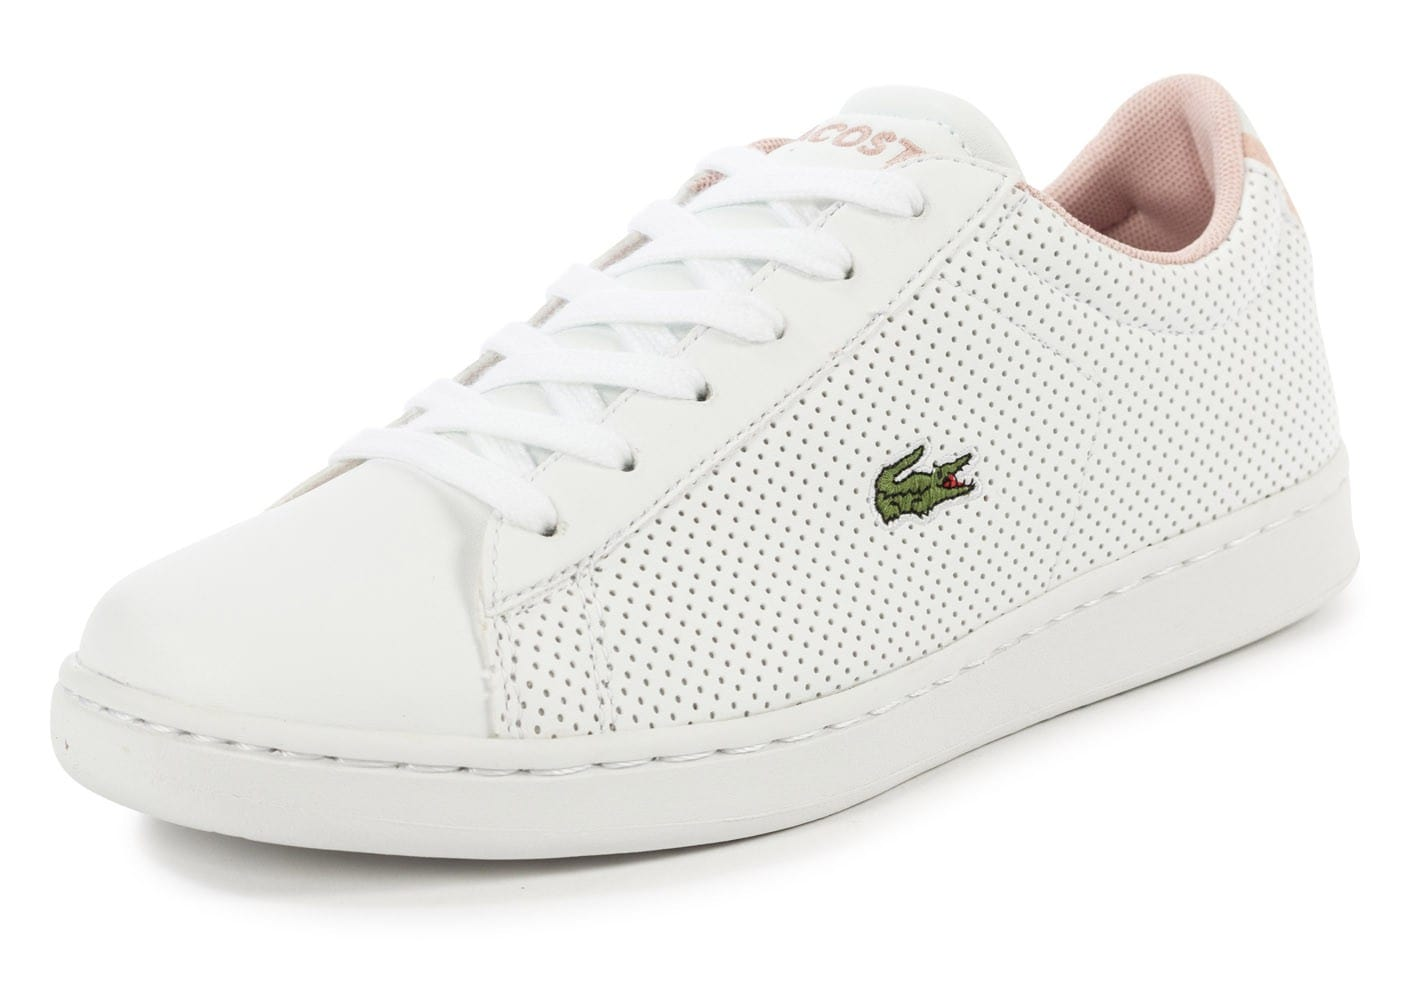 lacoste carnaby evo junior blanche et rose chaussures chaussures chausport. Black Bedroom Furniture Sets. Home Design Ideas